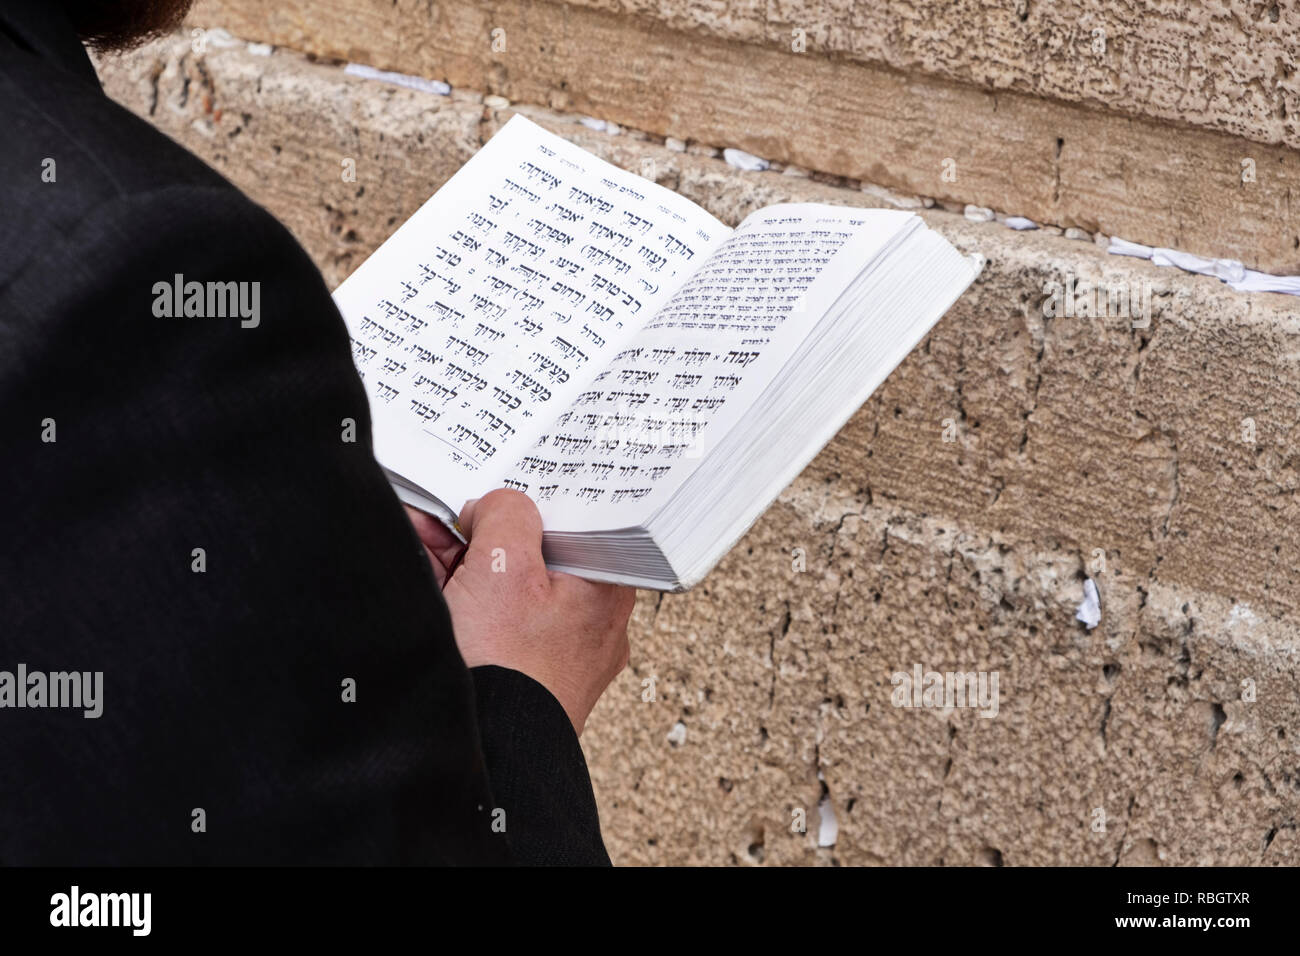 JERUSALEM, ISRAEL - JUNE 14, 2018: A man reading the torah and praying at the Wailing Wall in the Old City of Jerusalem in Israel. - Stock Image